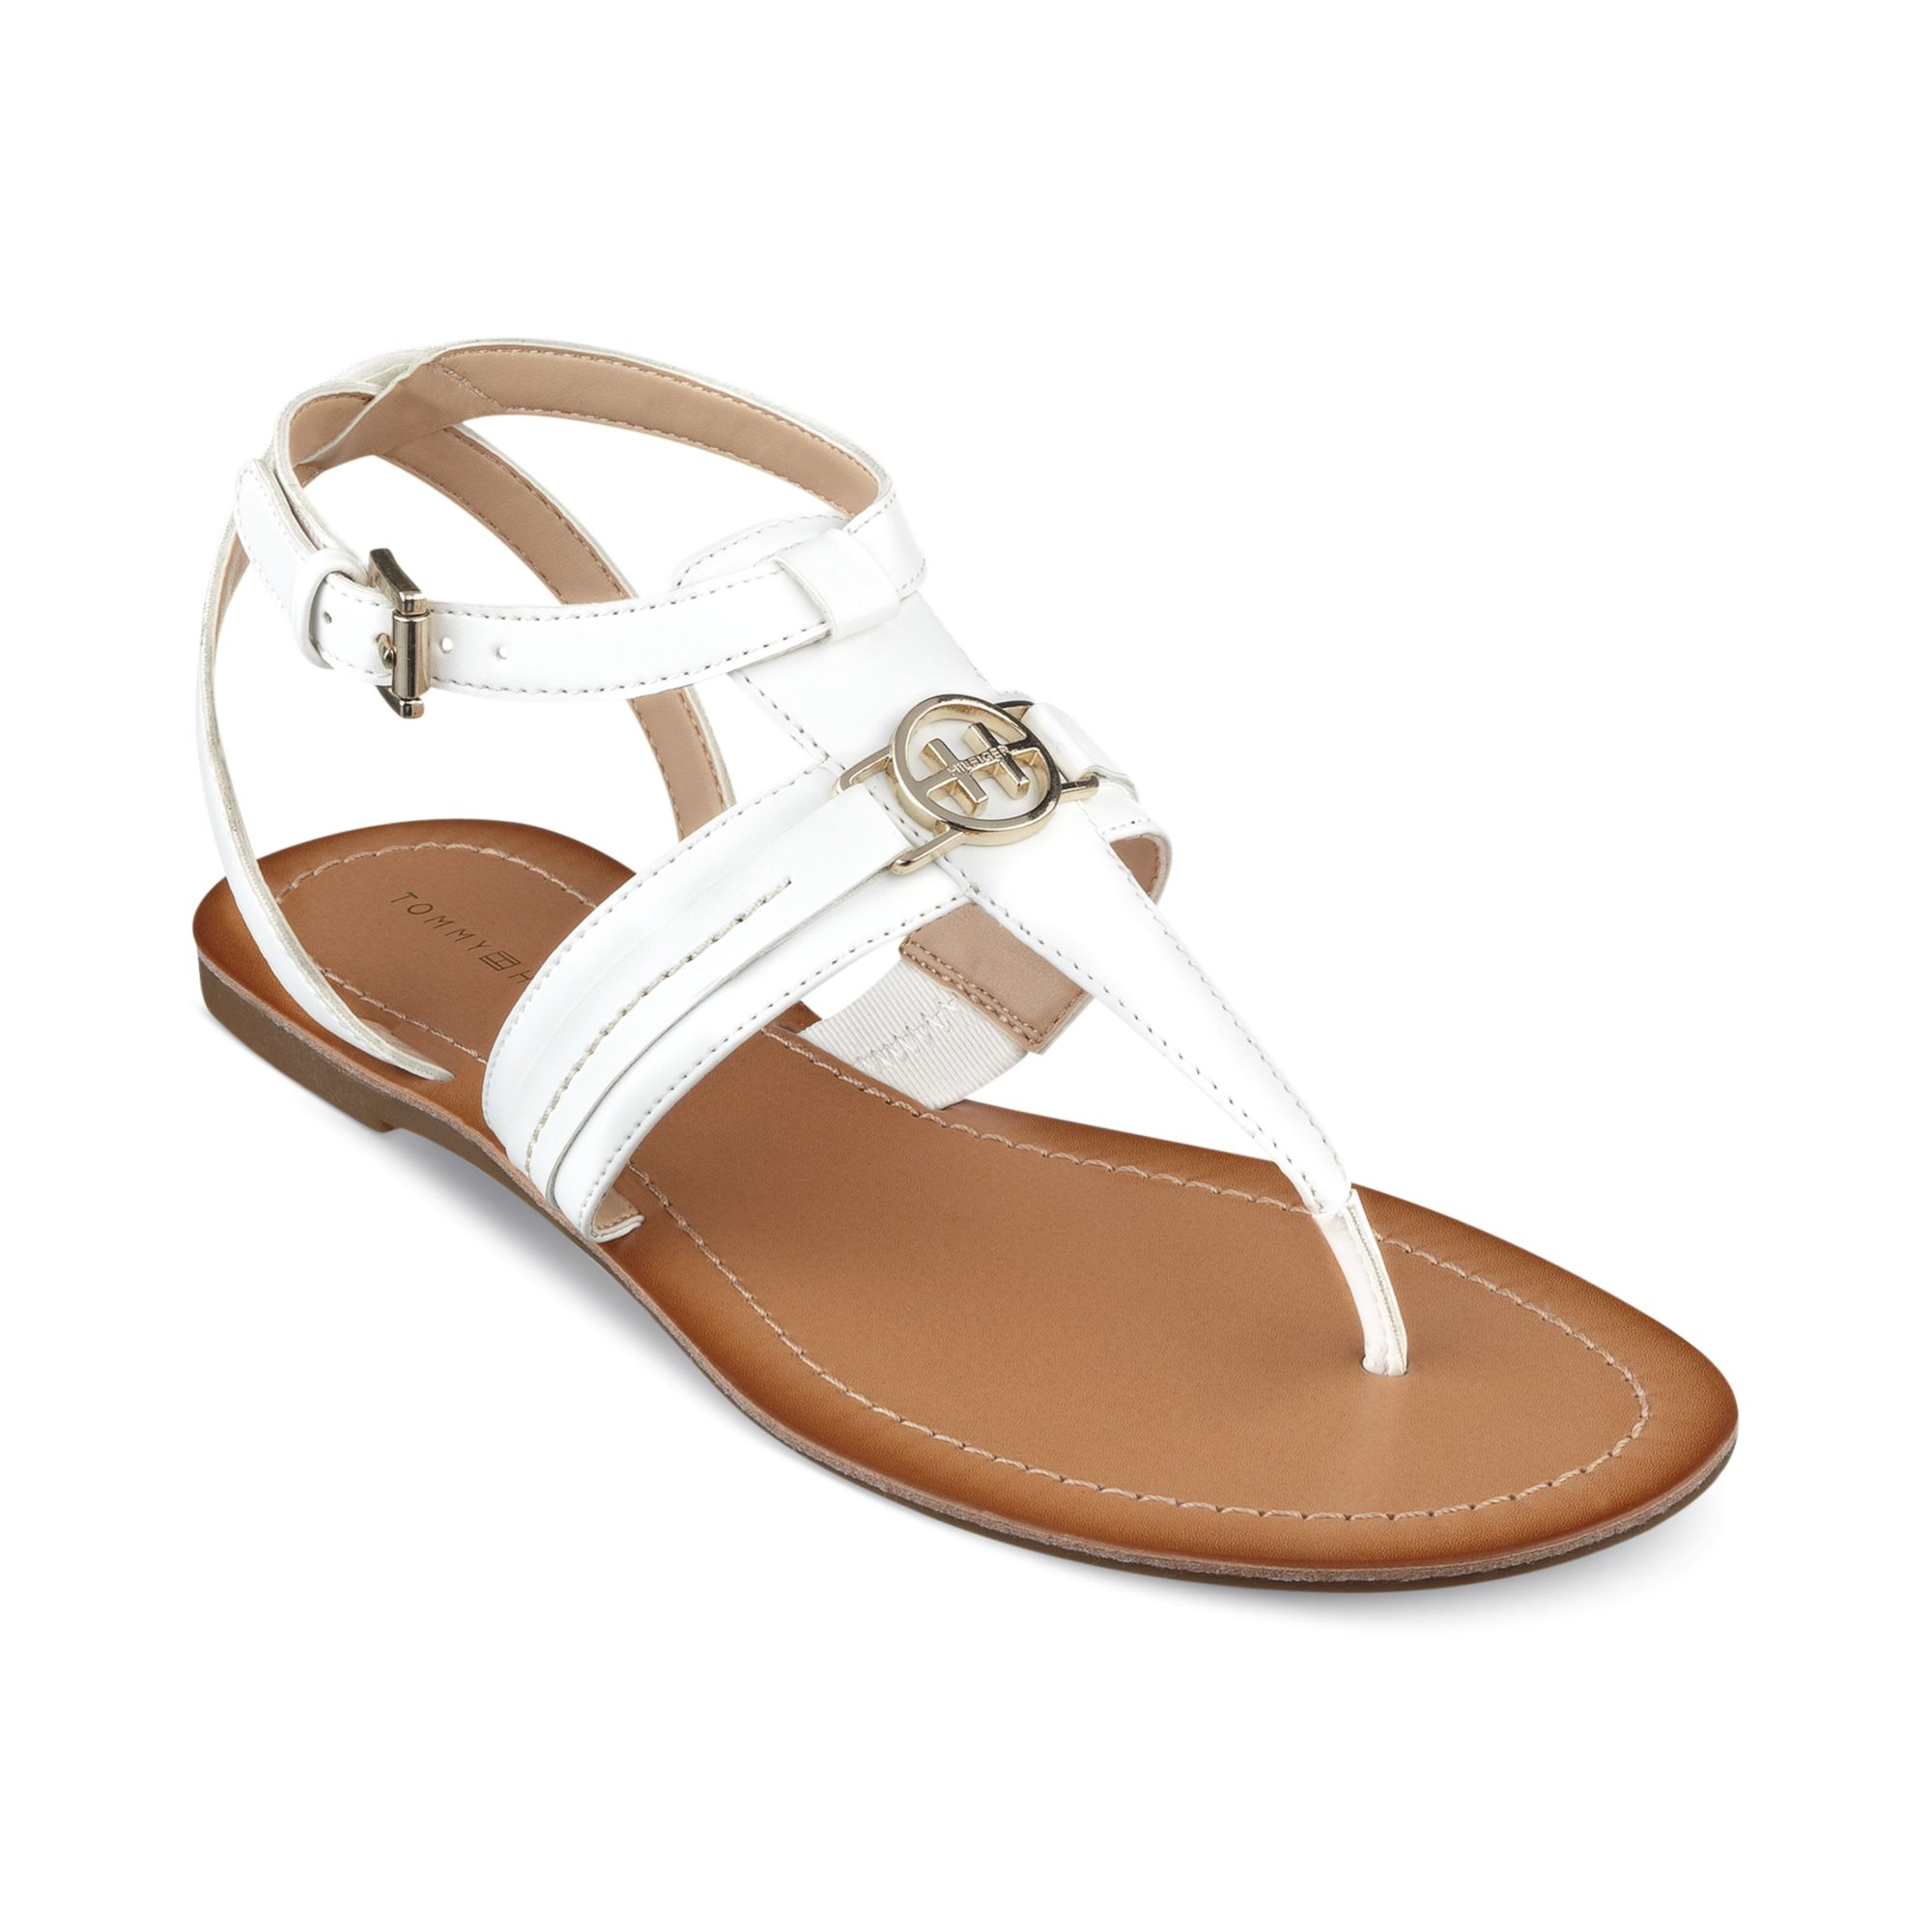 aabd80ac80bf92 Lyst - Tommy Hilfiger Womens Lorine Flat Thong Sandals in White